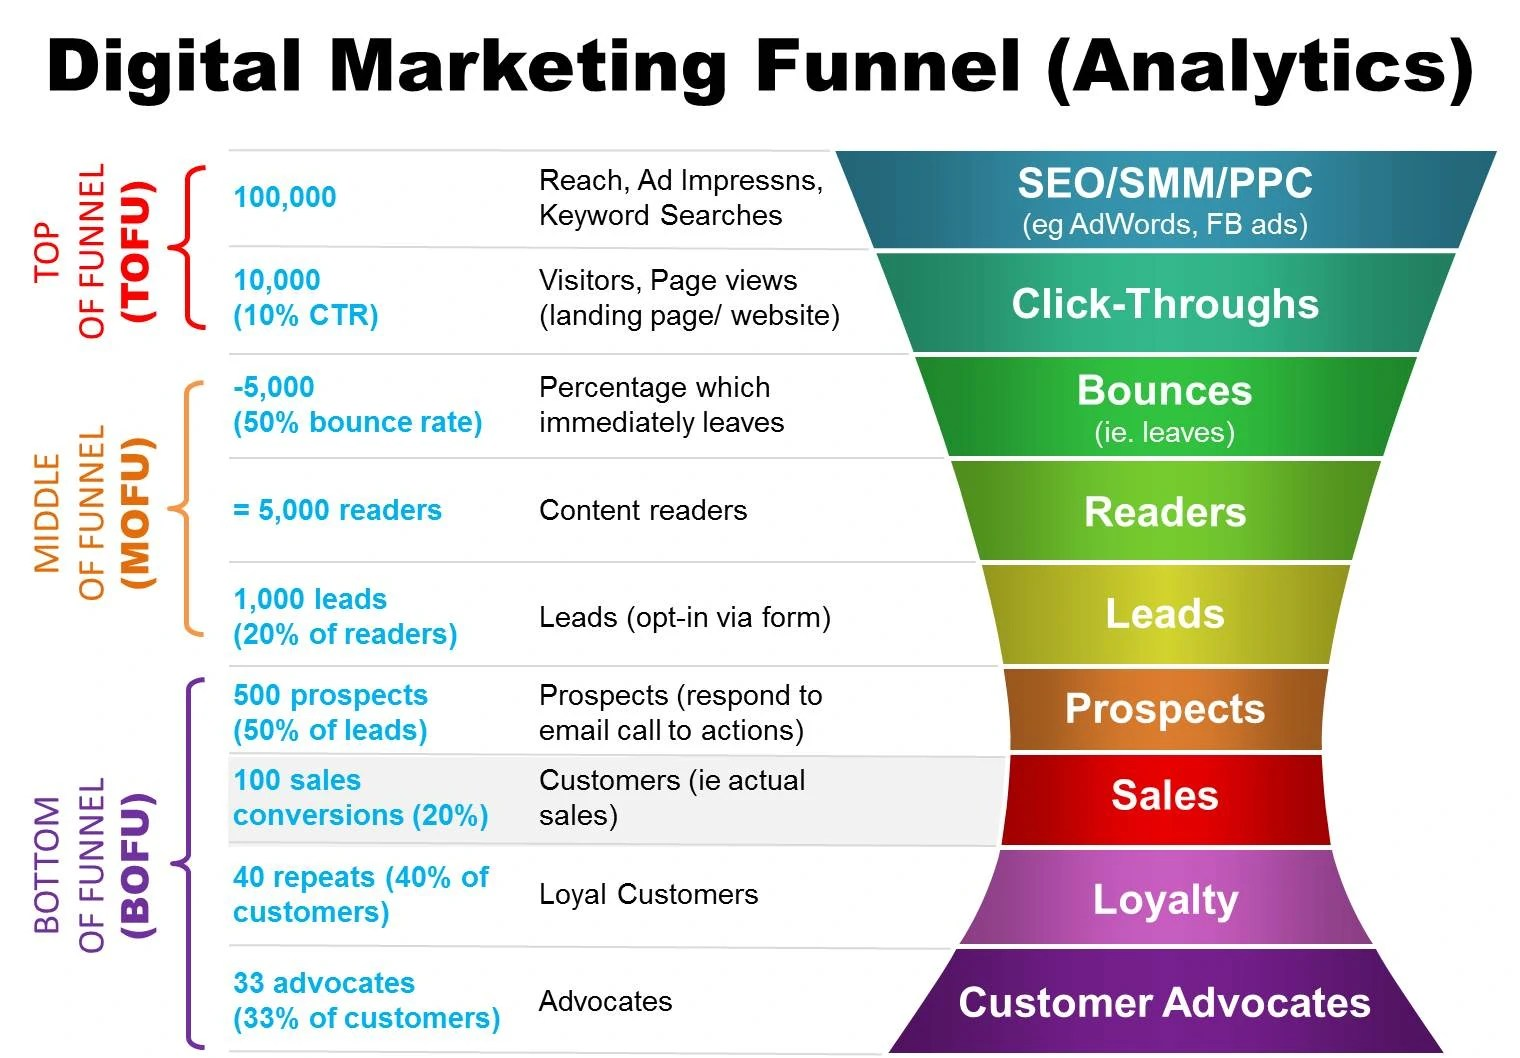 Digital Marketing Funnelytics Cooler Insights